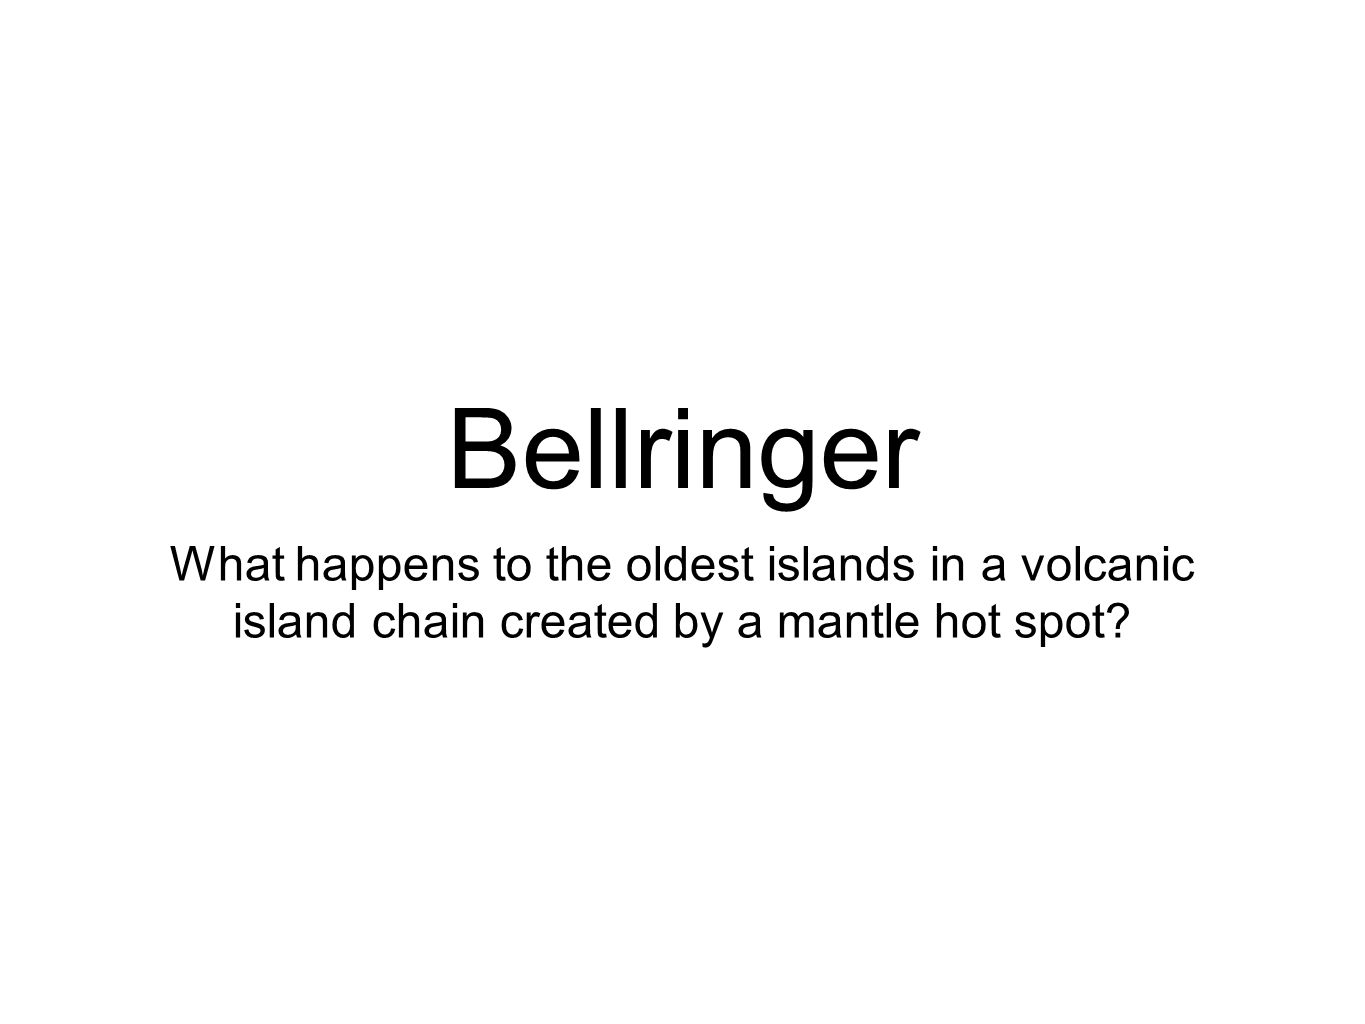 Bellringer What happens to the oldest islands in a volcanic island chain created by a mantle hot spot?